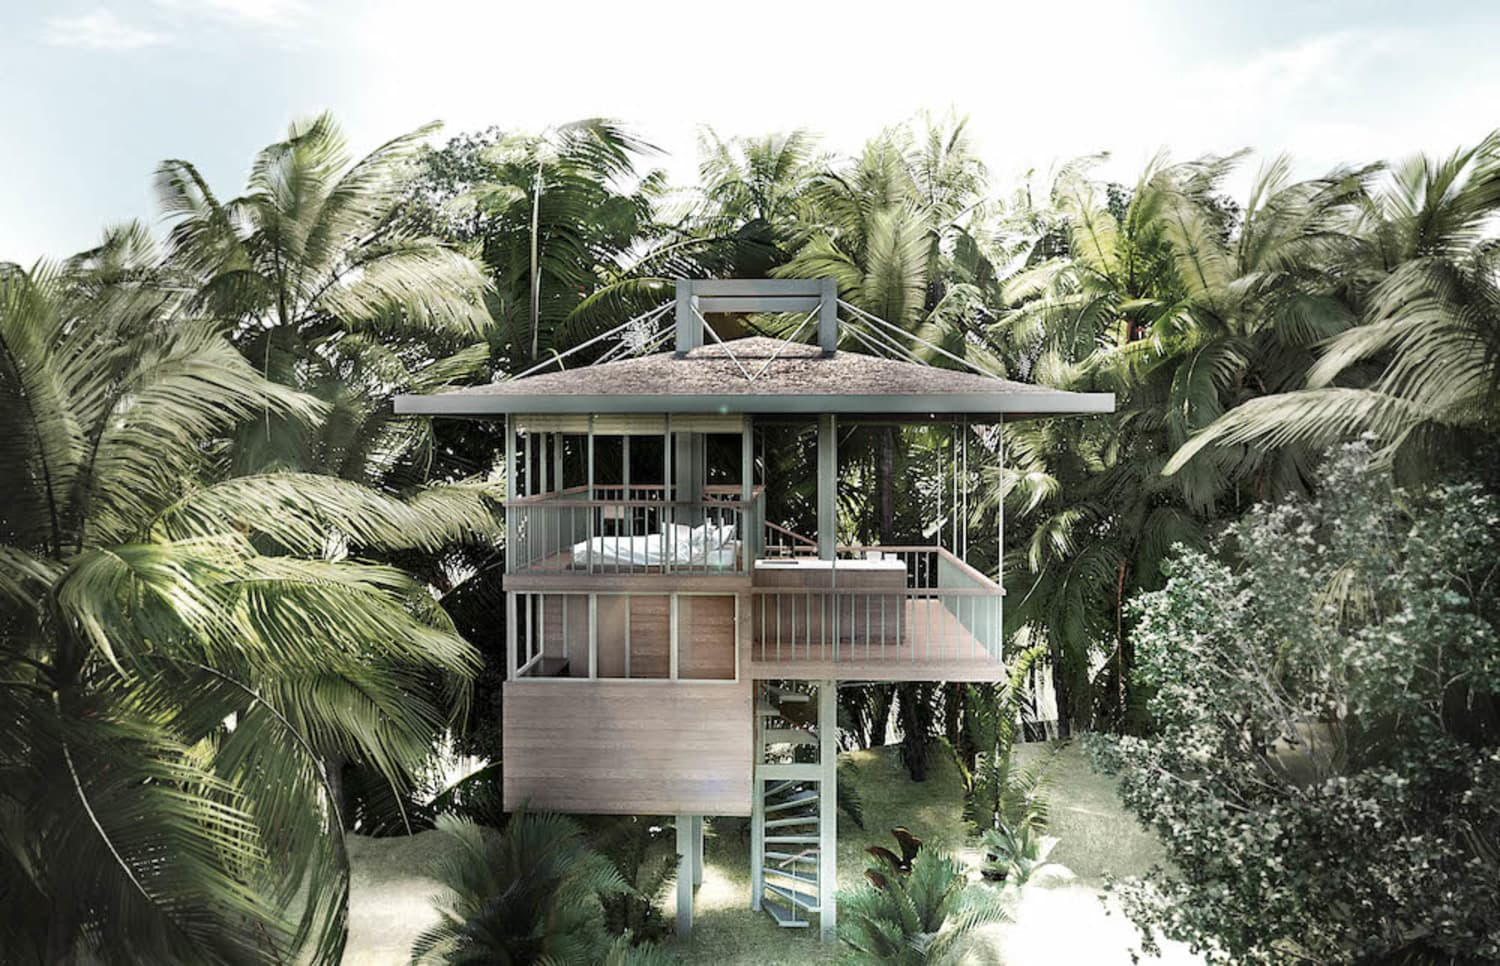 These Homes Built on Stilts in Bali Are Like Luxe Treehouses For Adults